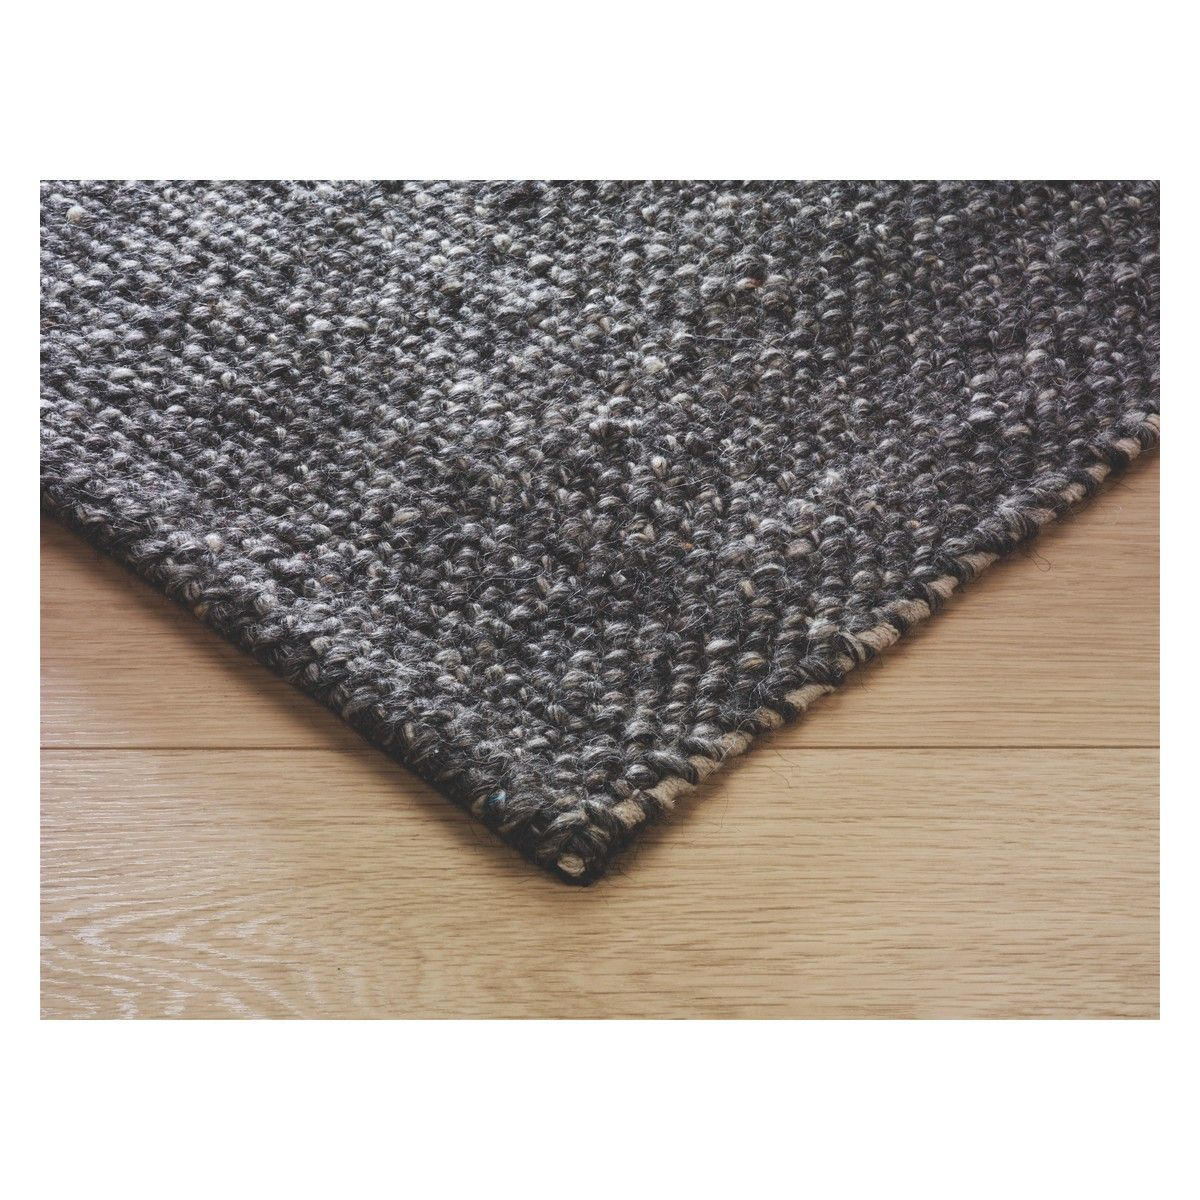 Roderick Large Brown Wool Rug 170 X 240cm Now At